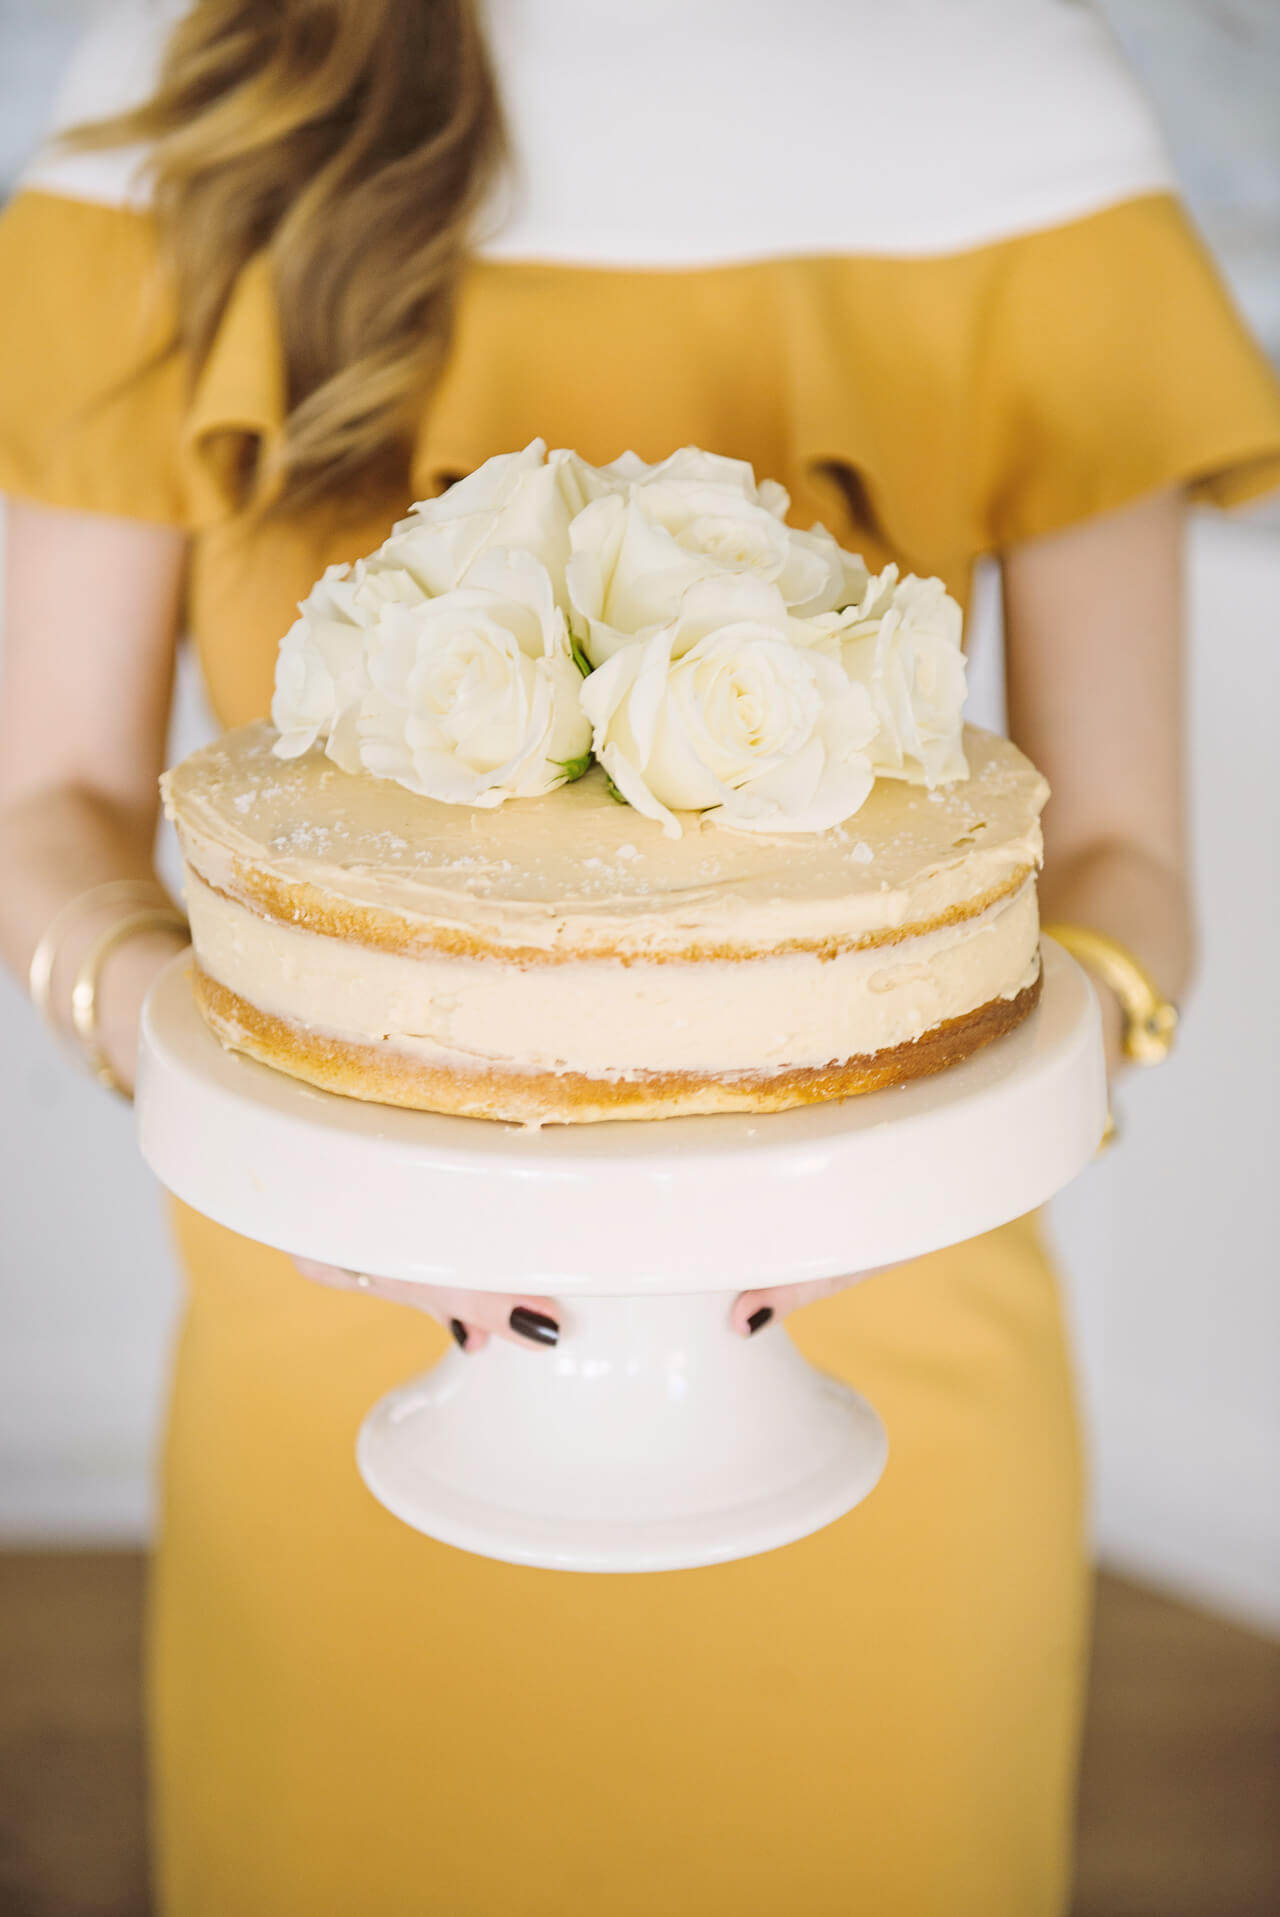 Sweet and Salty Vanilla Bean Cake with Caramel Frosting